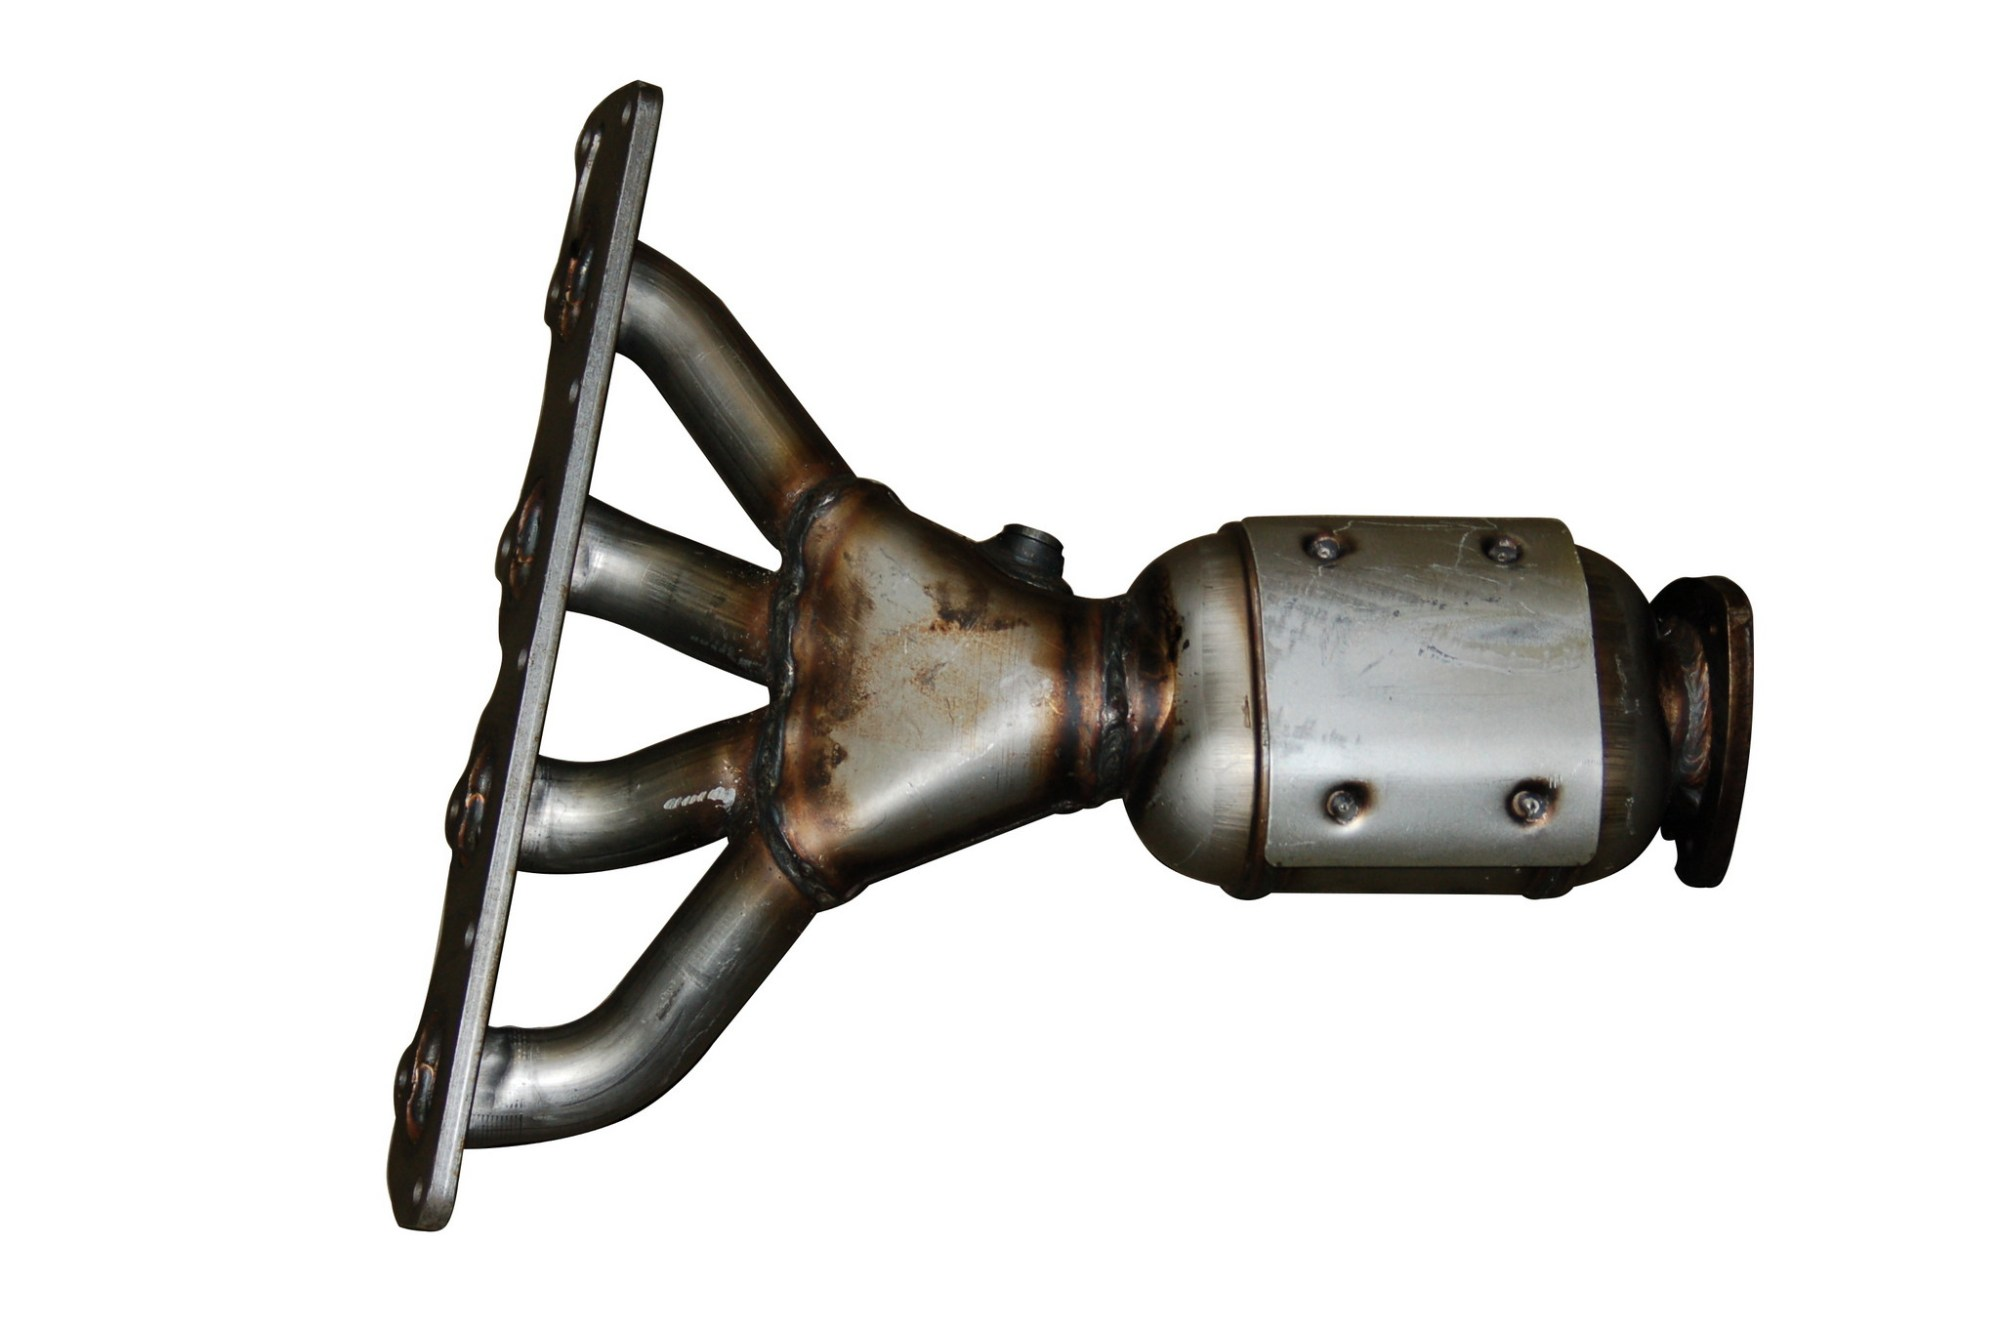 hight resolution of 2006 chevrolet malibu exhaust manifold with integrated catalytic converter bo 079 5210